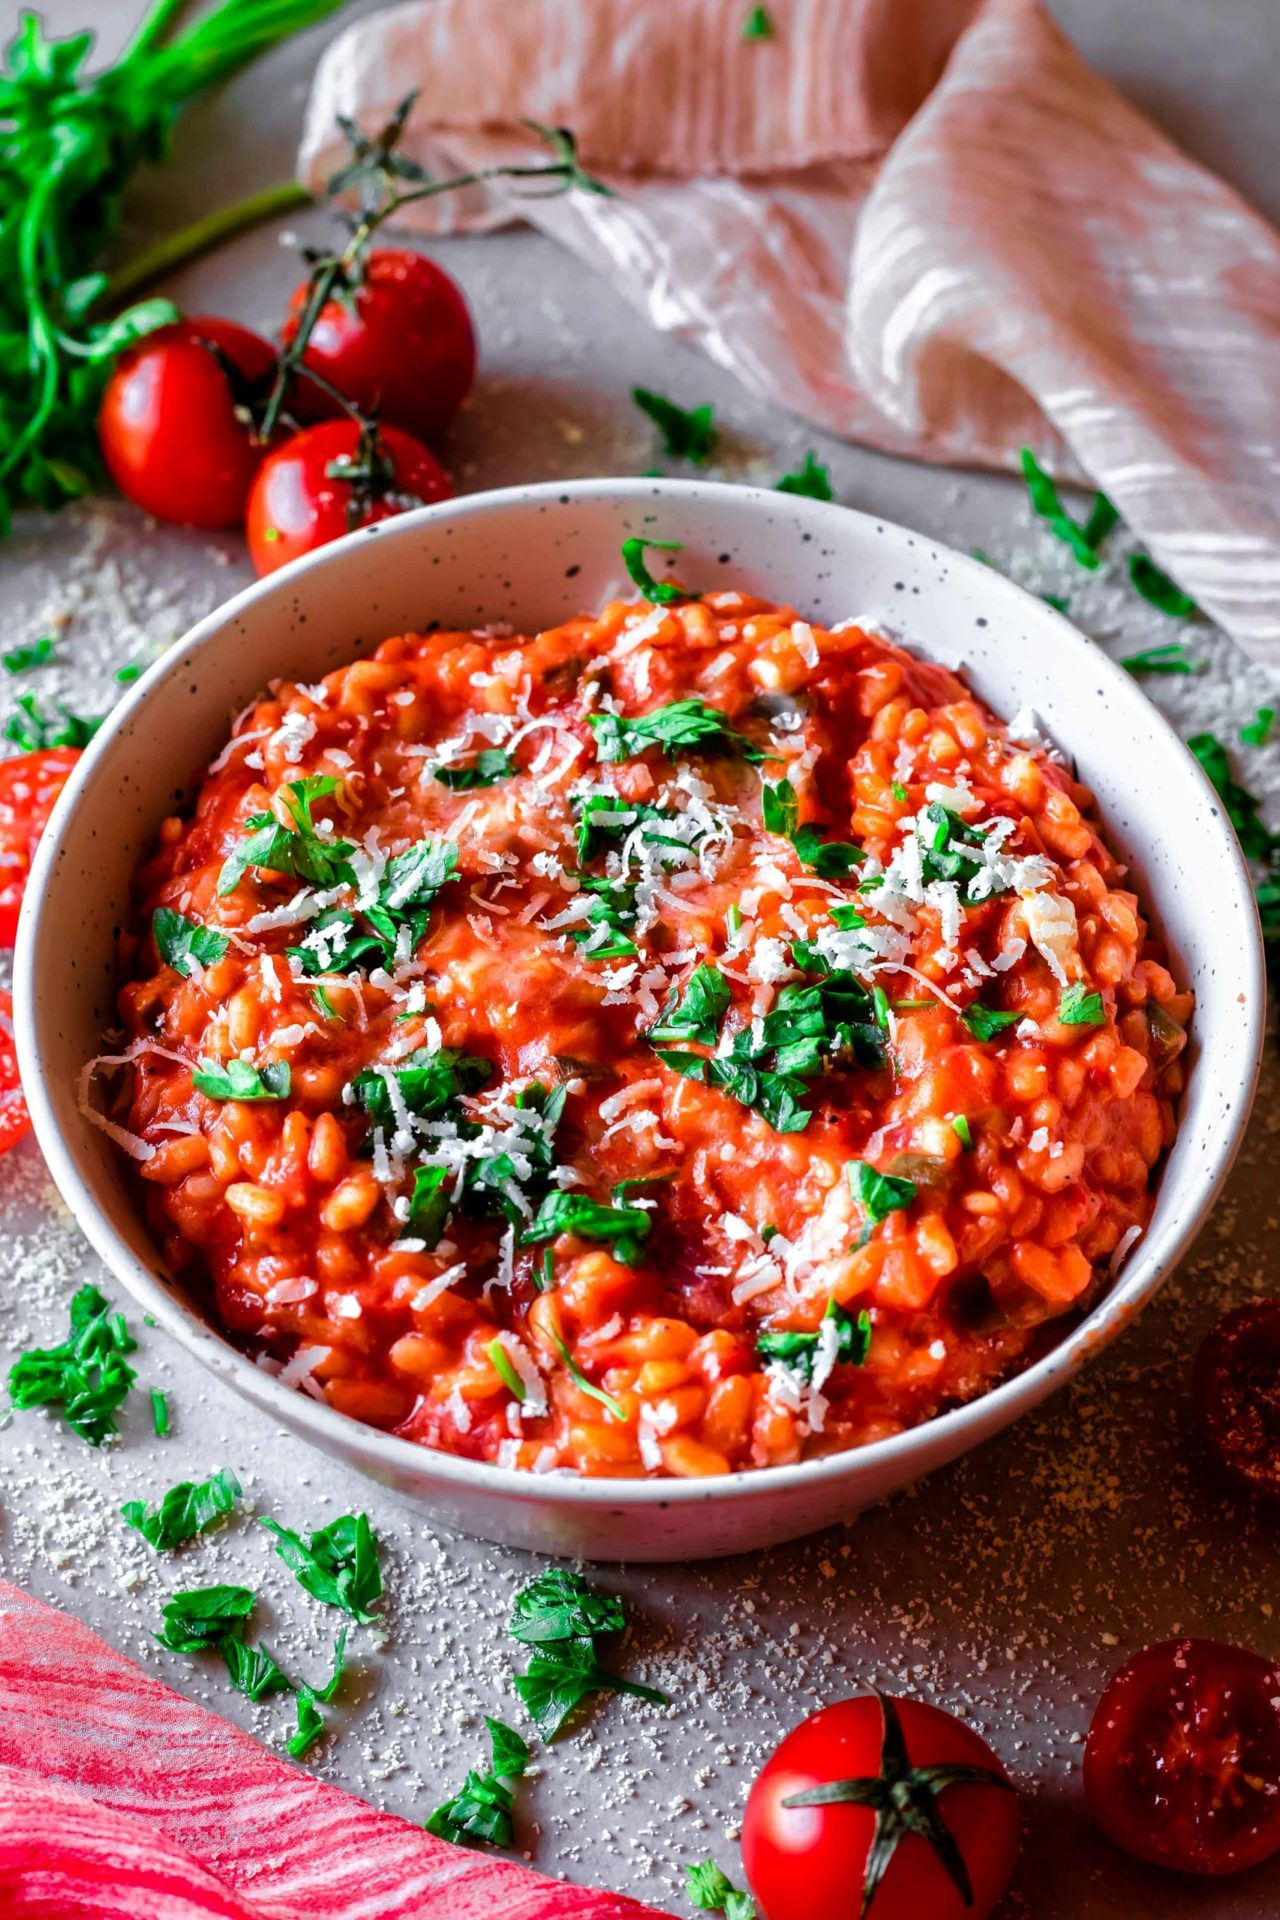 This Low FODMAP Creamy Tomato Risotto is super flavorful, savory, so creamy, simple to make, satisfying and so comforting and delicious!